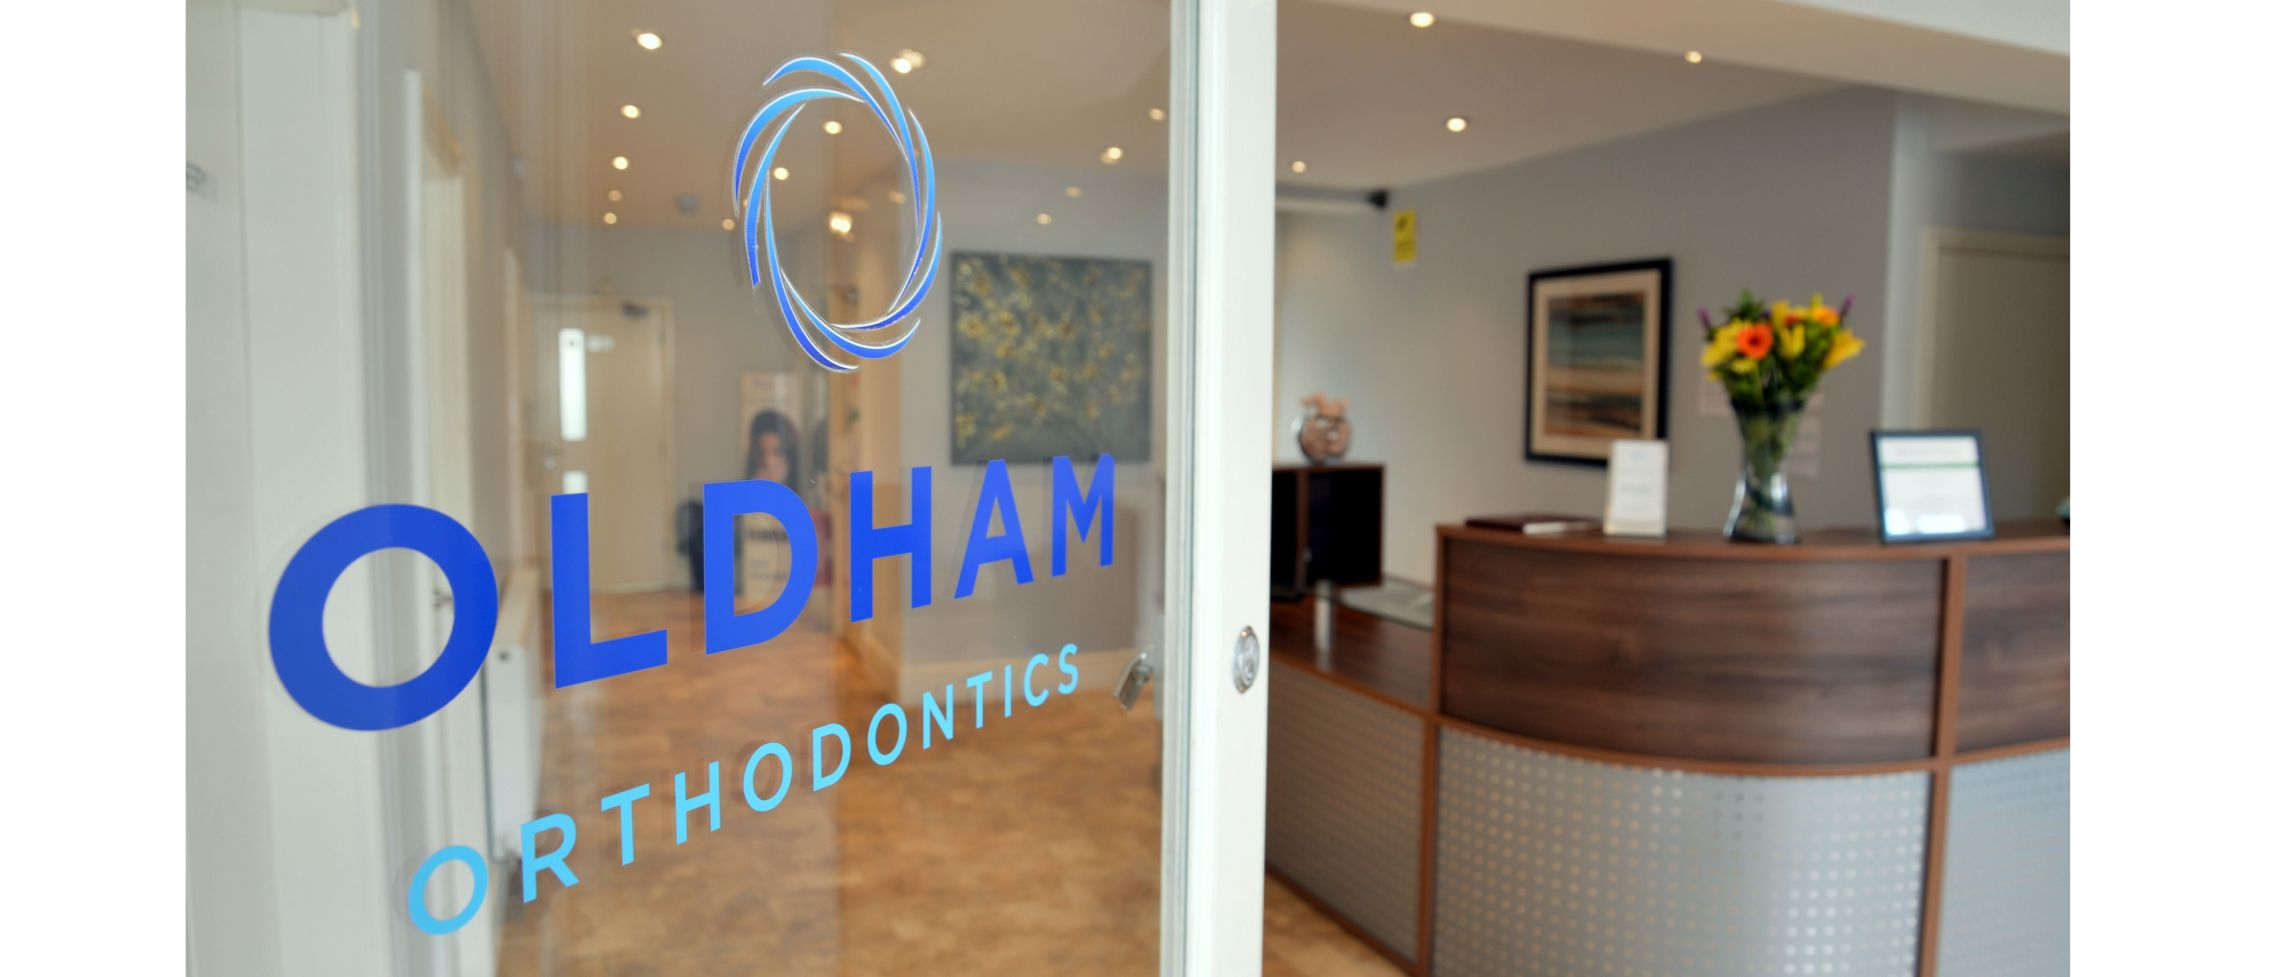 Oldham Orthodontics